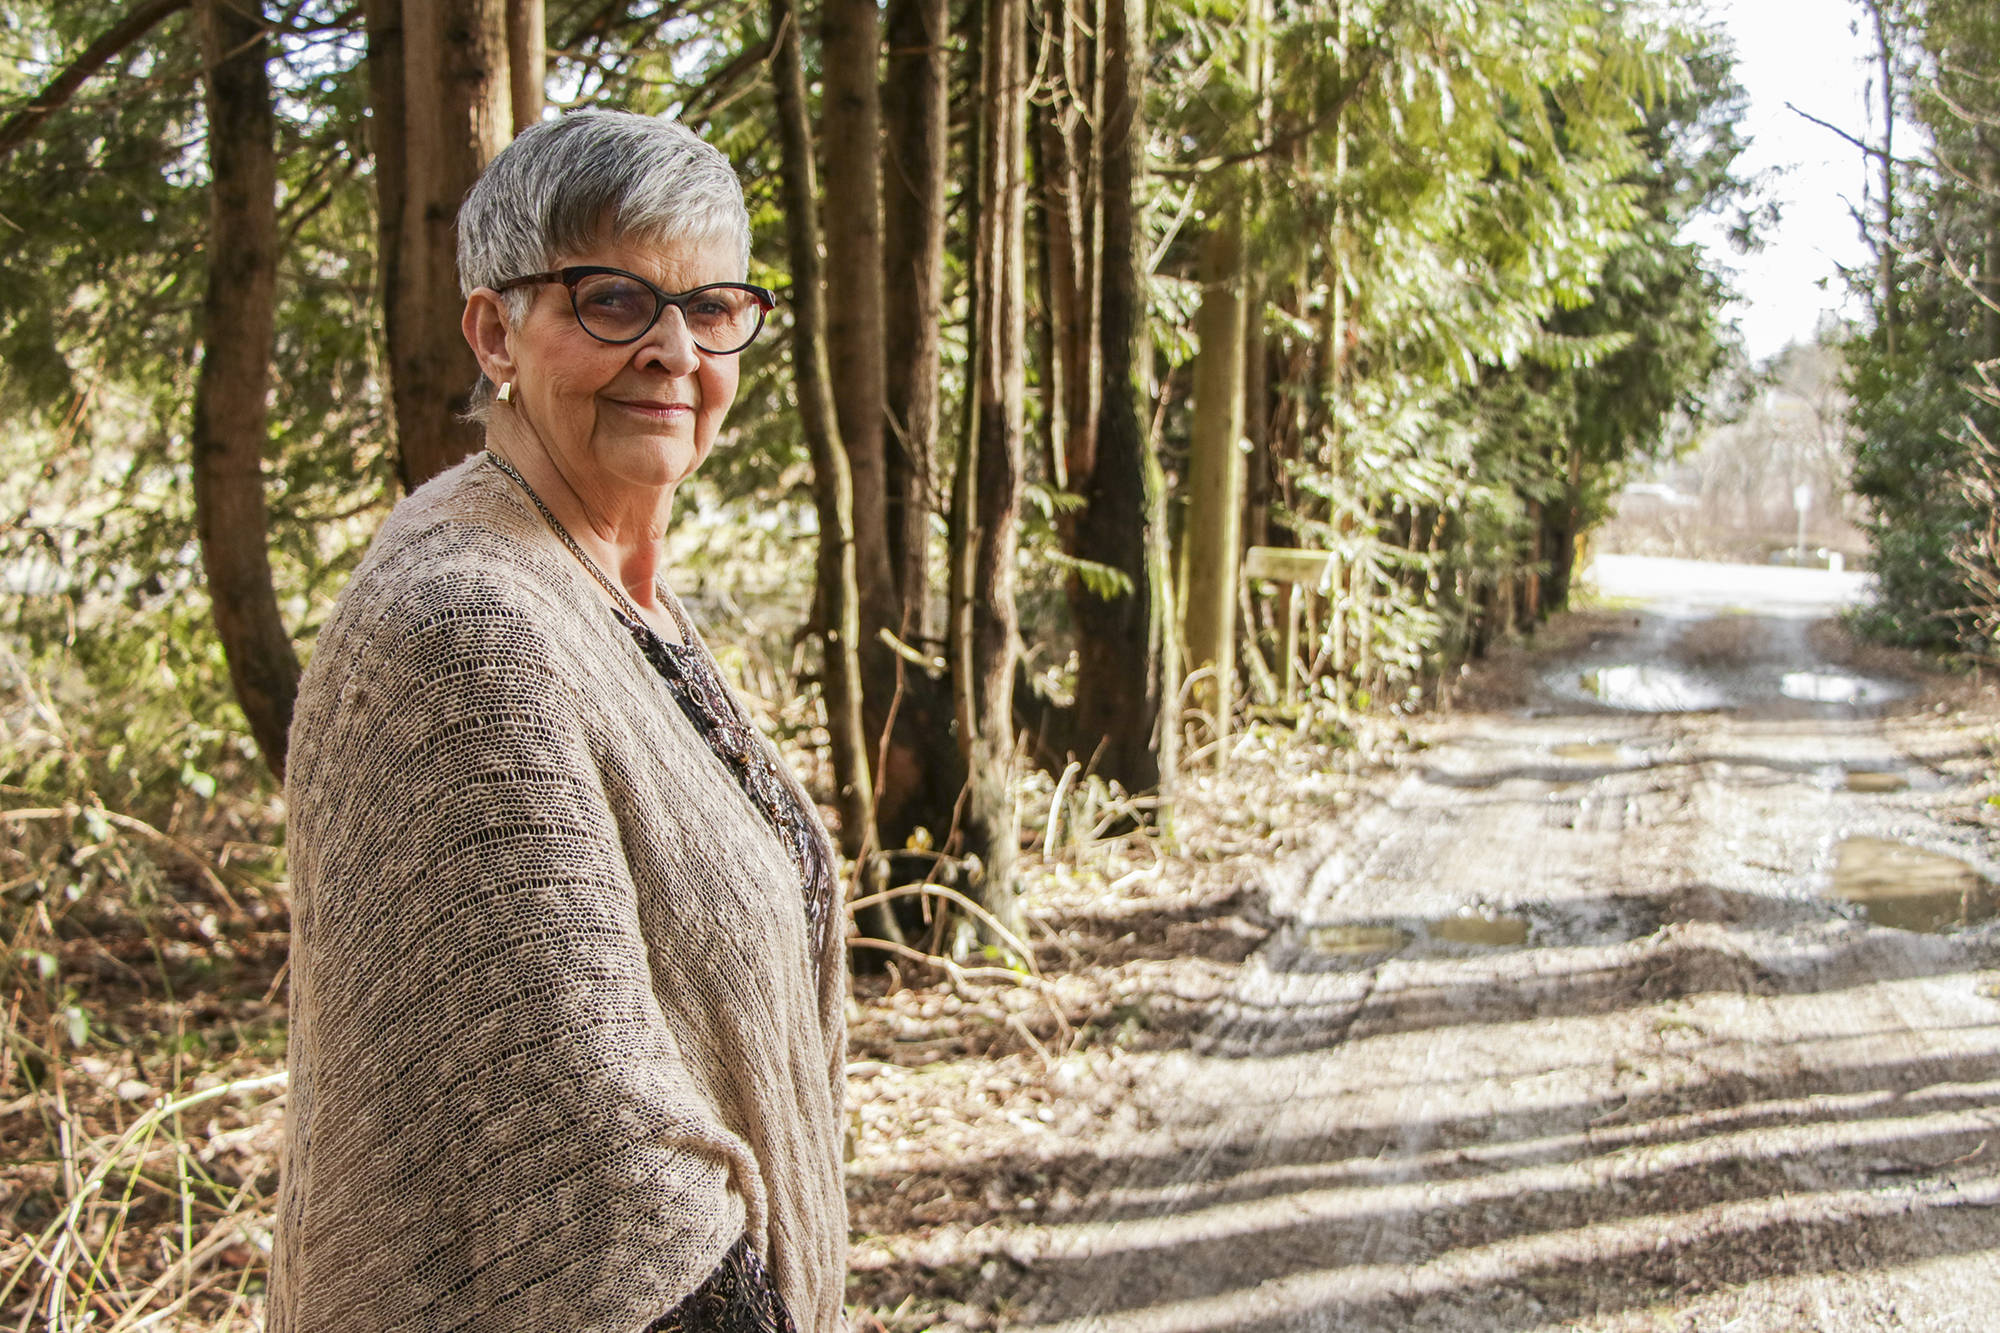 Peggy Allen's long driveway is the frontier between what is effectively ground zero for homelessness in Abbotsford and Allen's home, where she faced years of conflict with the local homeless population. Allen has since had a change in paradigms that has led her to working with the homeless community to improve conditions on the streets. Dustin Godfrey/Abbotsford News